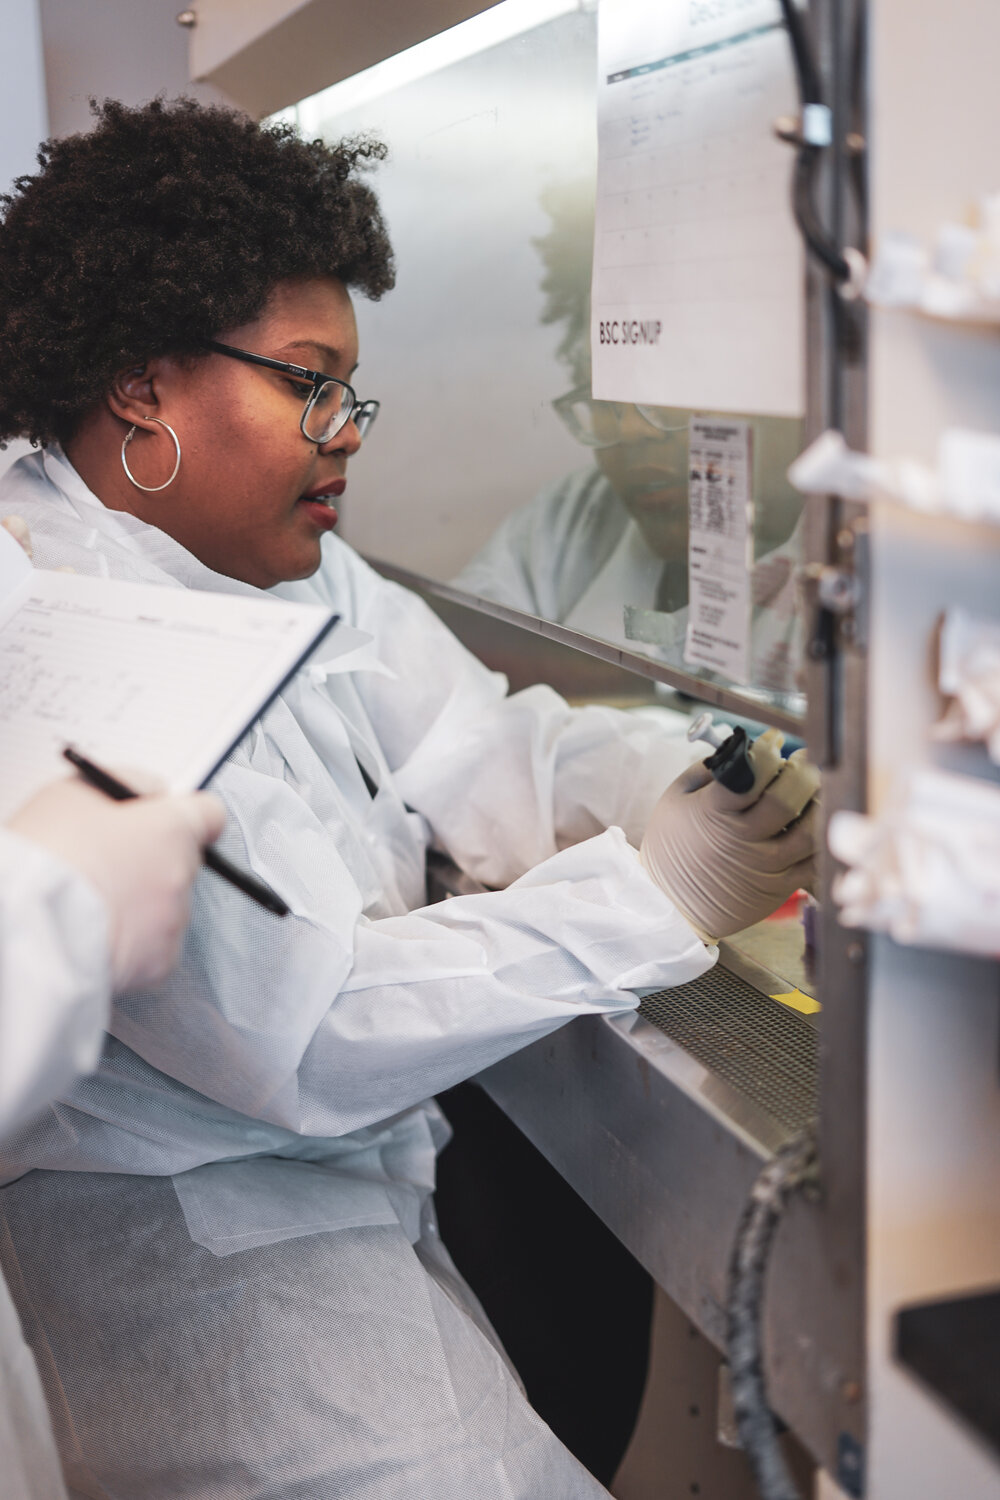 Dr. Tiara Moore, a postdoctoral fellow at The Nature Conservancy and the Environmental Genomics Lab of the University of Washington, processes eDNA samples from TNC's Ellsworth Creek Preserve. Photo by Courtney Baxter / The Nature Conservancy